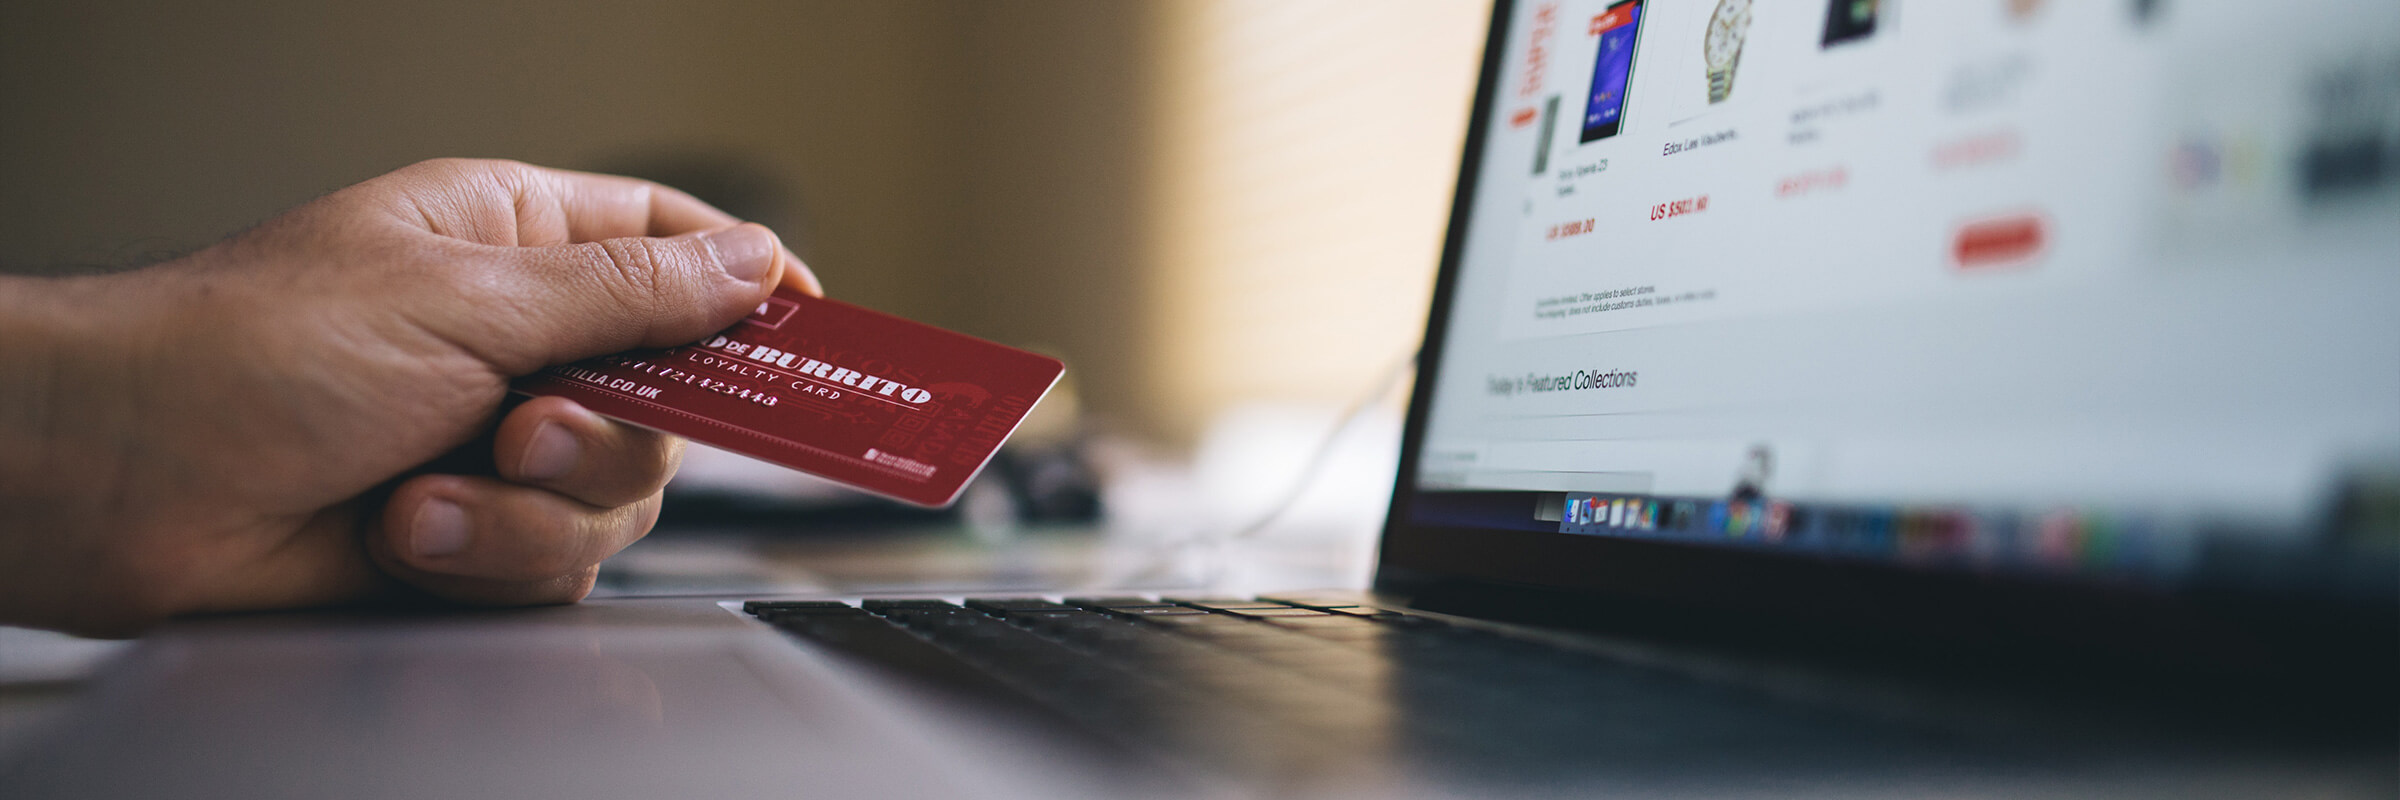 5 reasons to start selling online in 2020